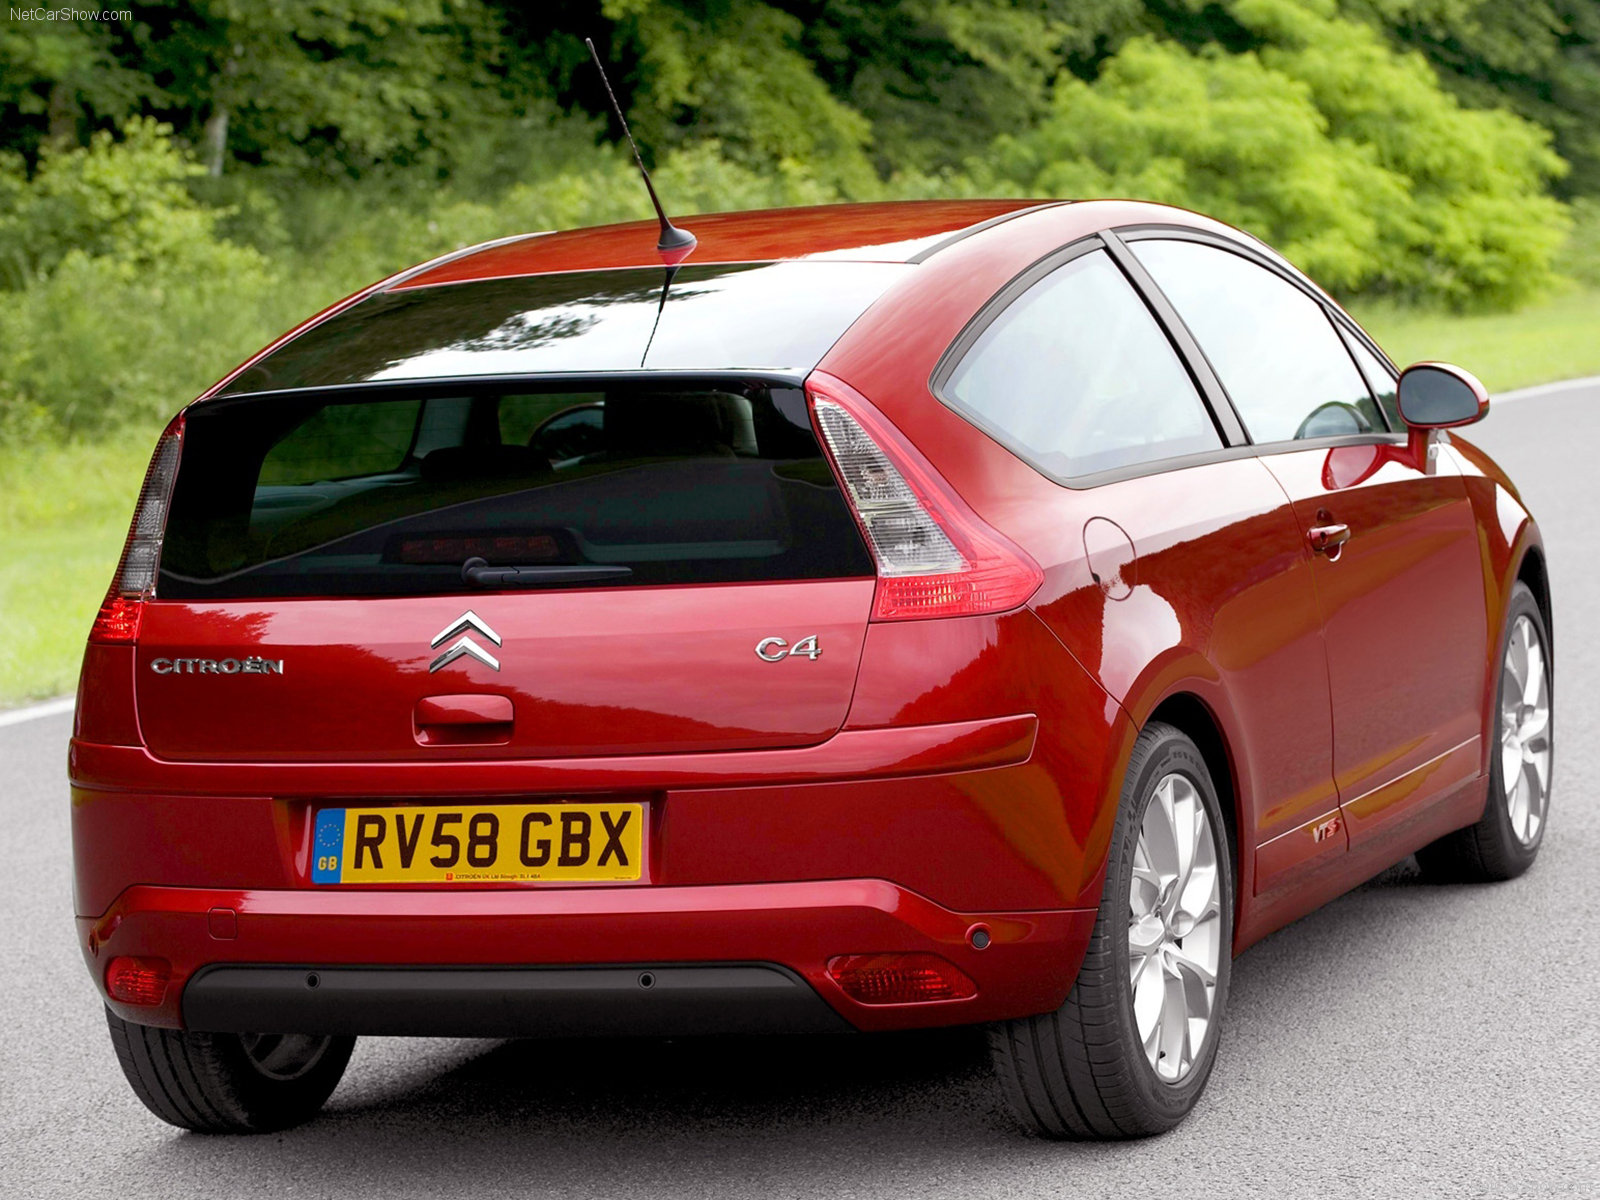 Citroen C4 VTS Coupe 2008